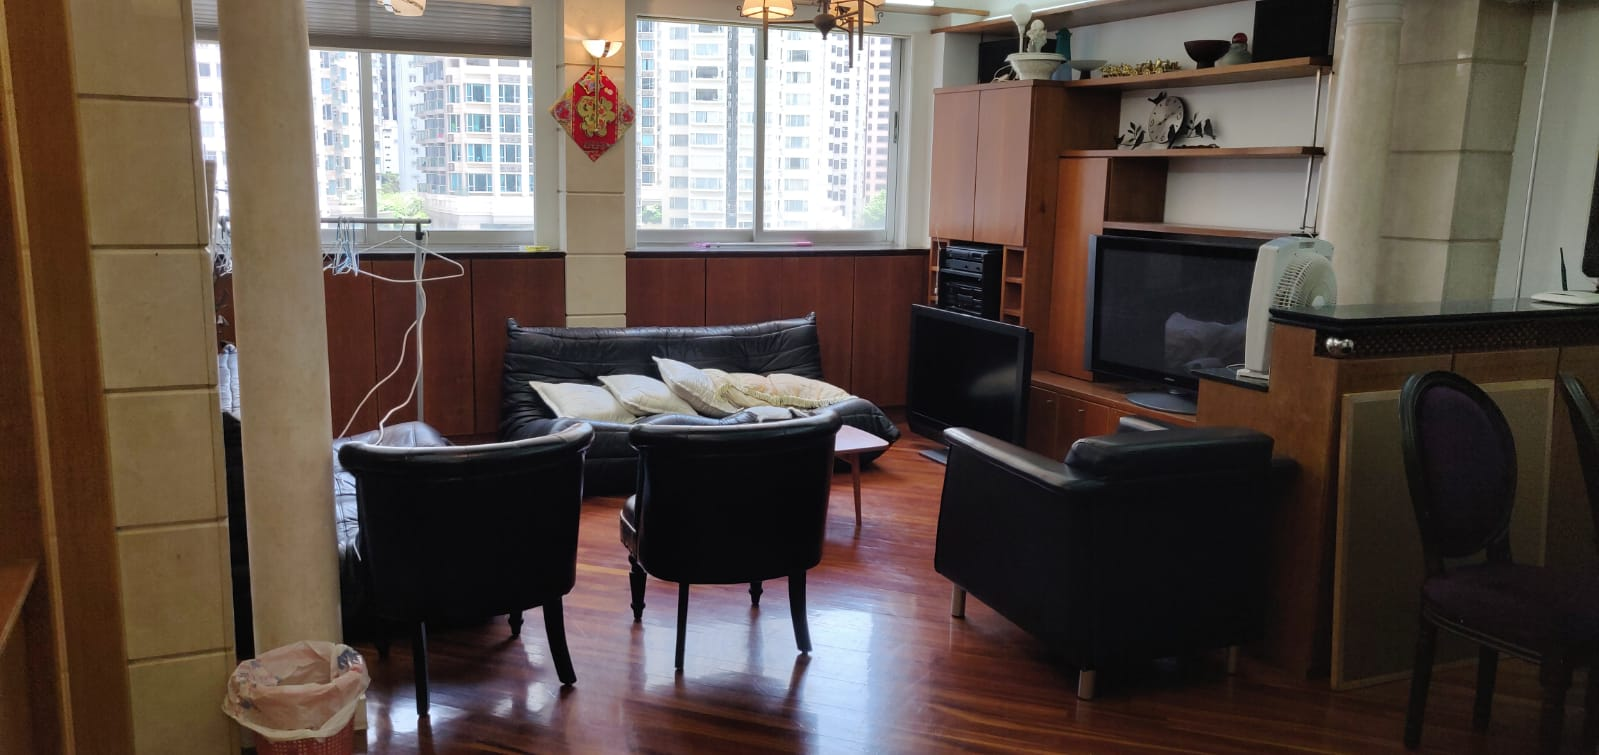 [Wan Chai]  Hennessy Building, Middle Floor Flat, 3 rooms 2 toilet